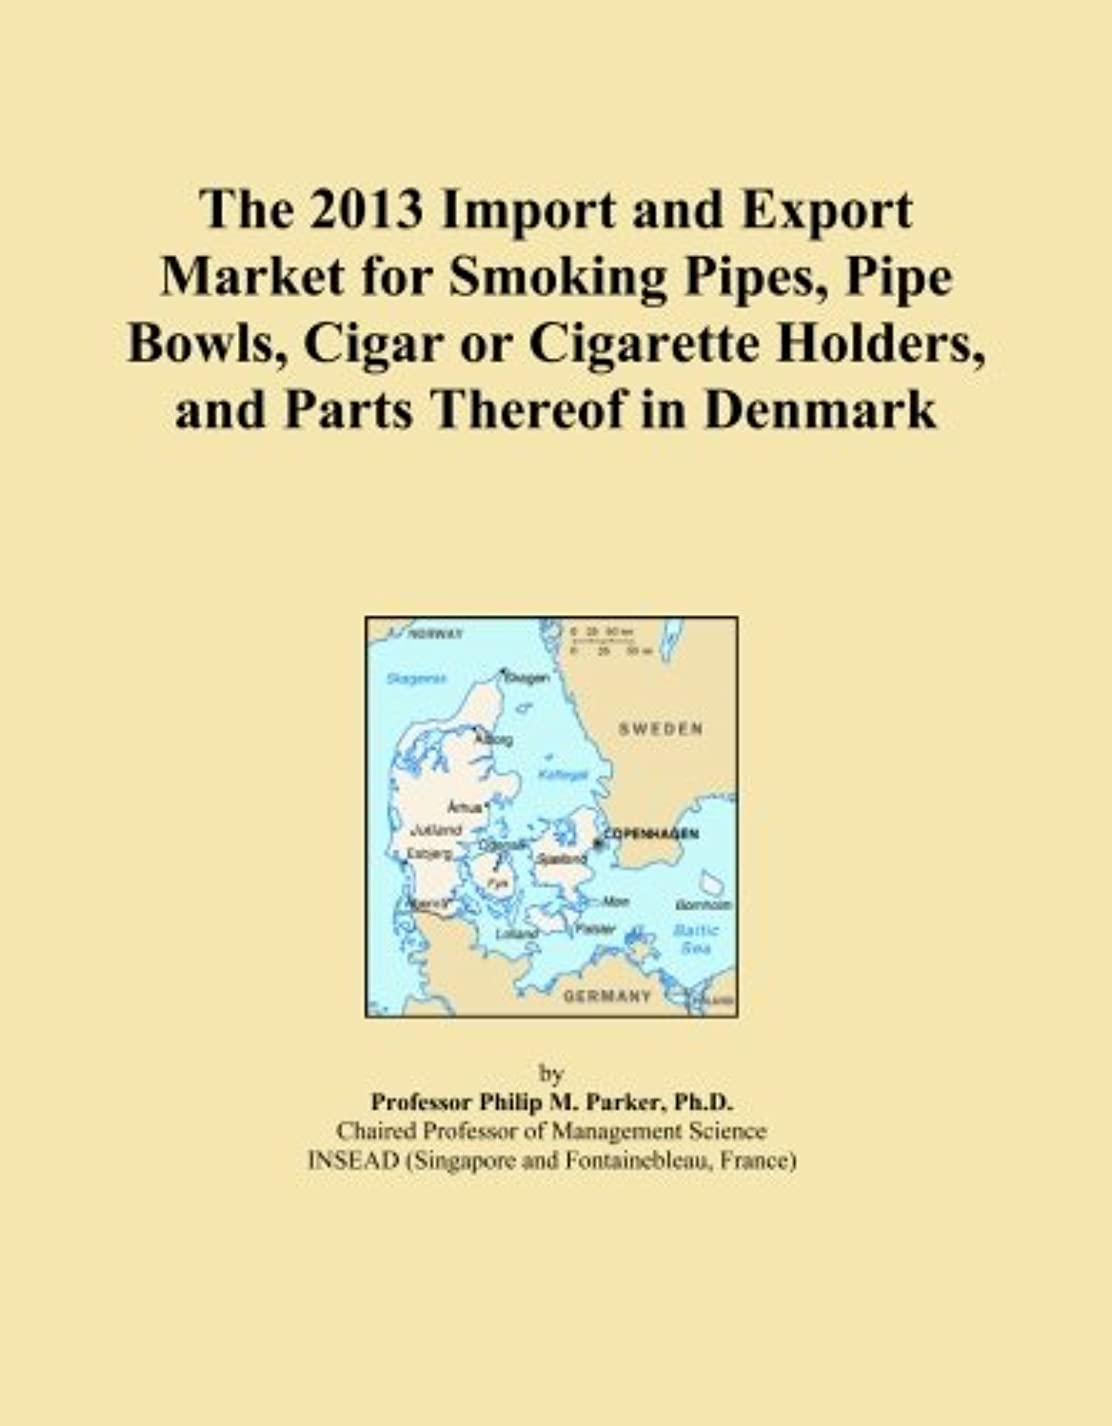 ほとんどない放射する簡単にThe 2013 Import and Export Market for Smoking Pipes, Pipe Bowls, Cigar or Cigarette Holders, and Parts Thereof in Denmark